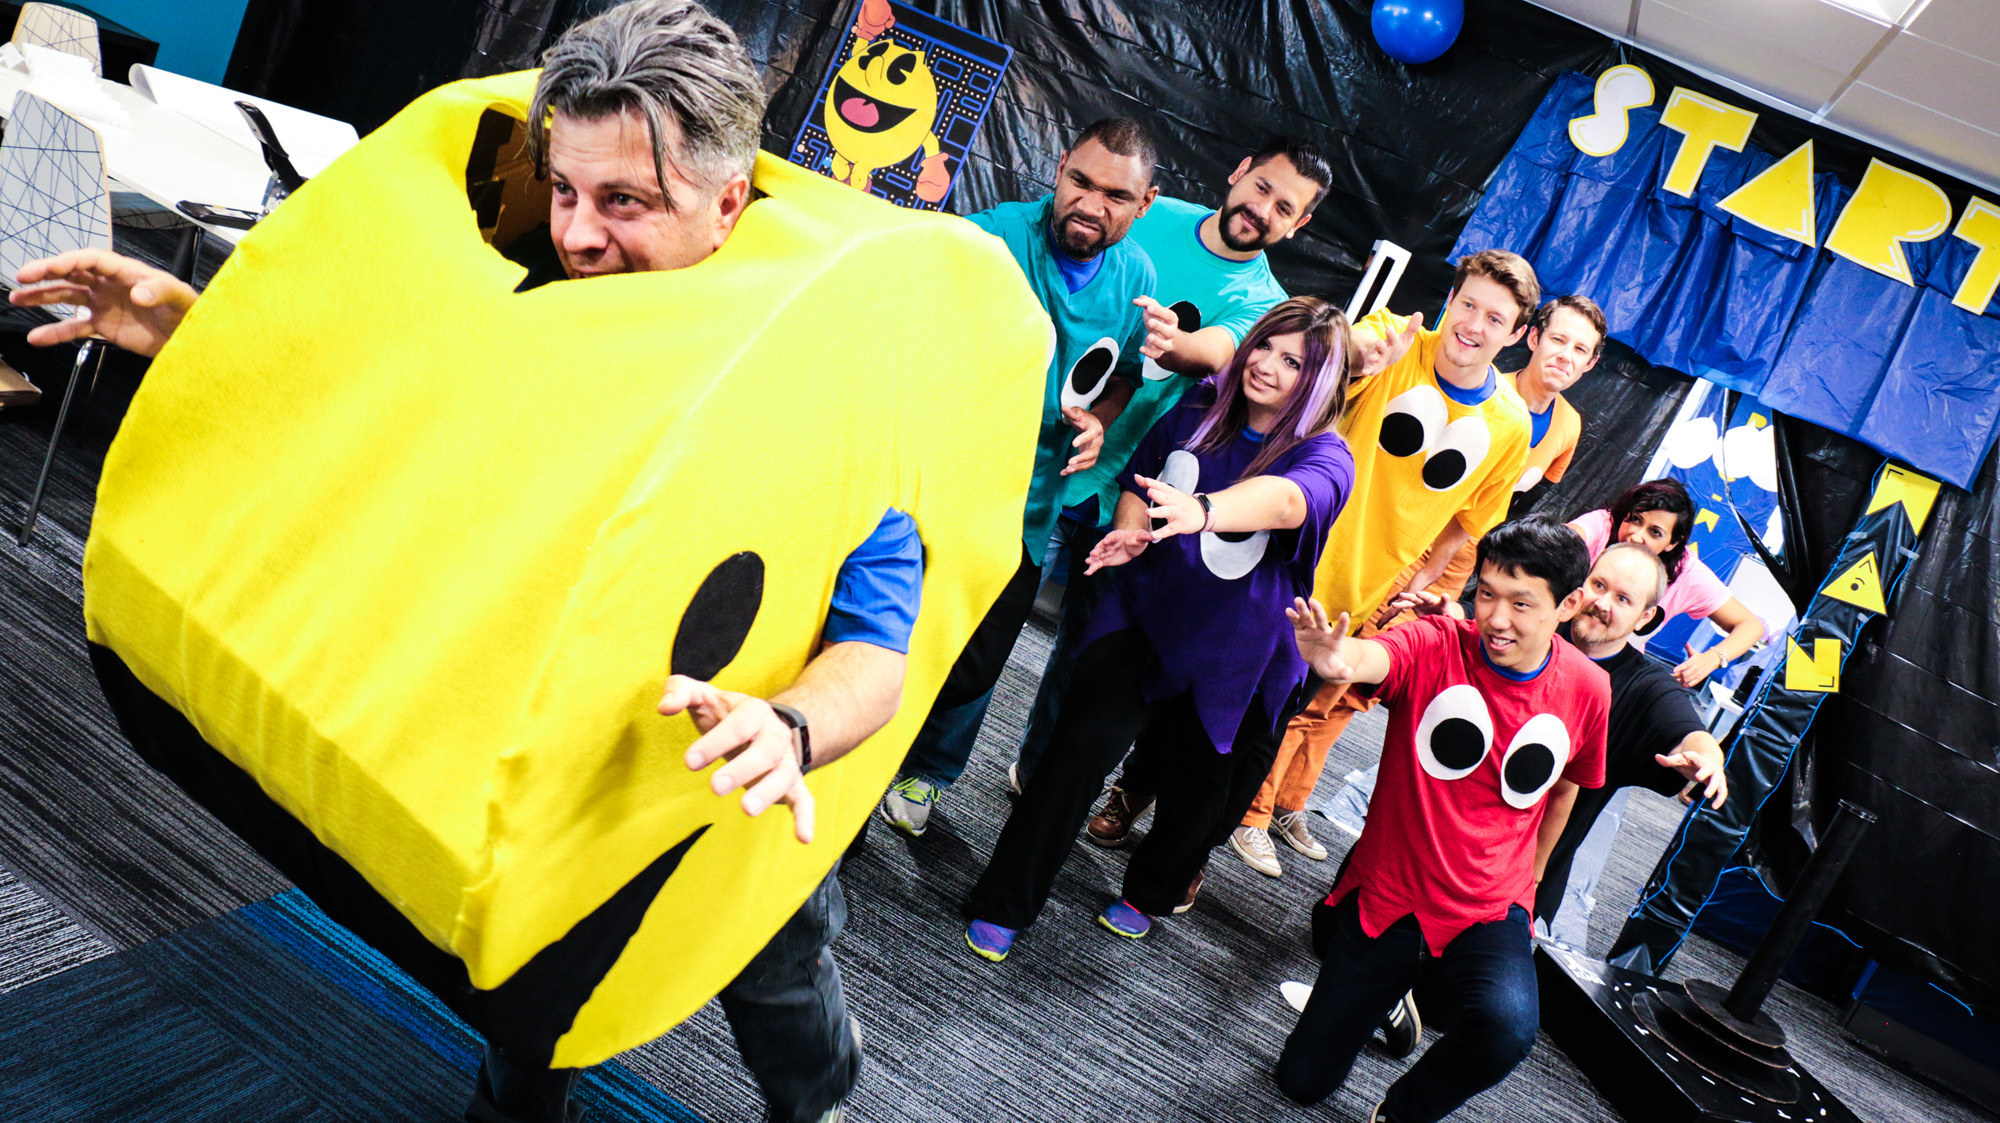 PacMan universe at the firm